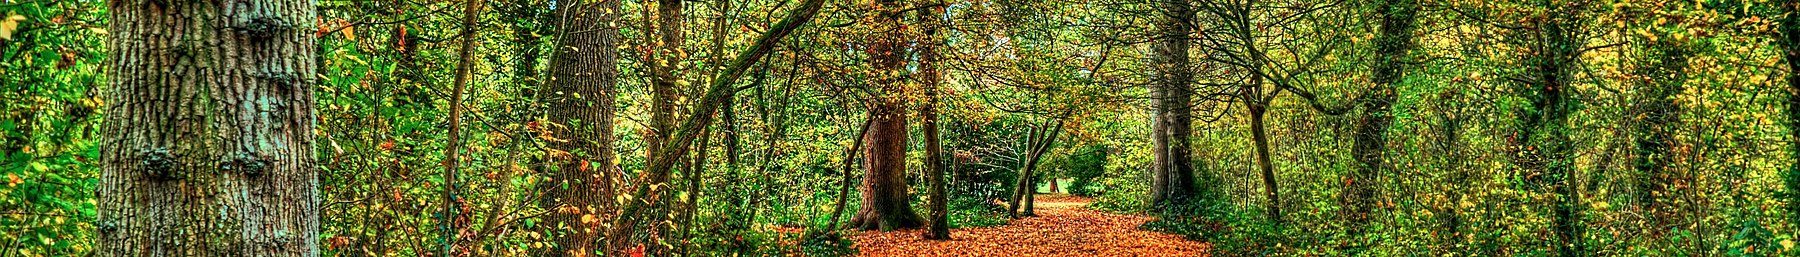 South East England banner Sussex forest.jpg